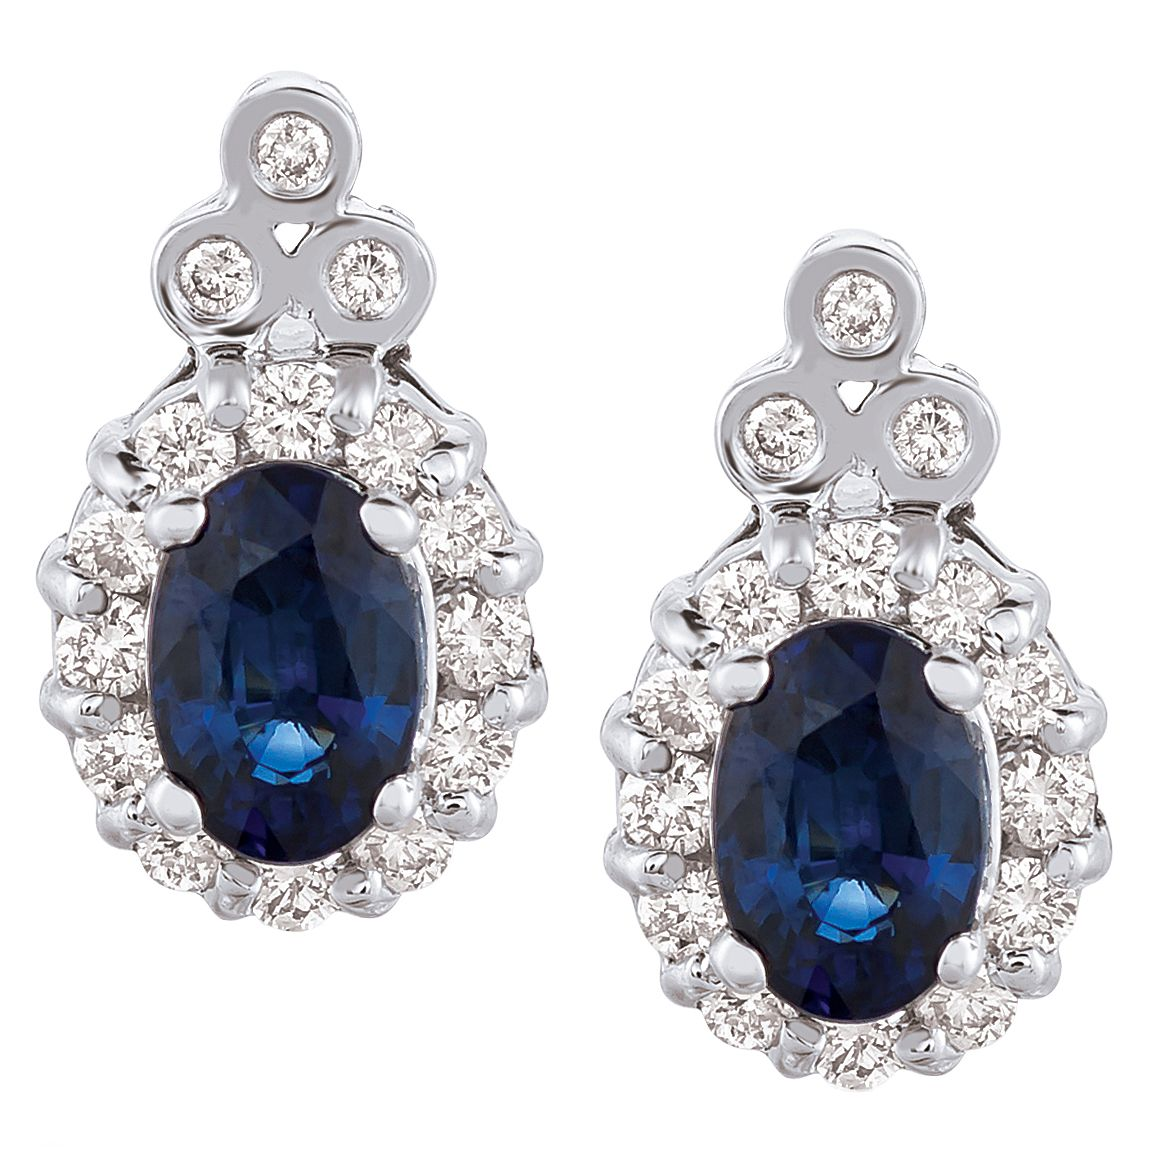 Le Vian 14ct Vanilla Gold Sapphire & 0.40ct Diamond Earrings - Product number 6207200